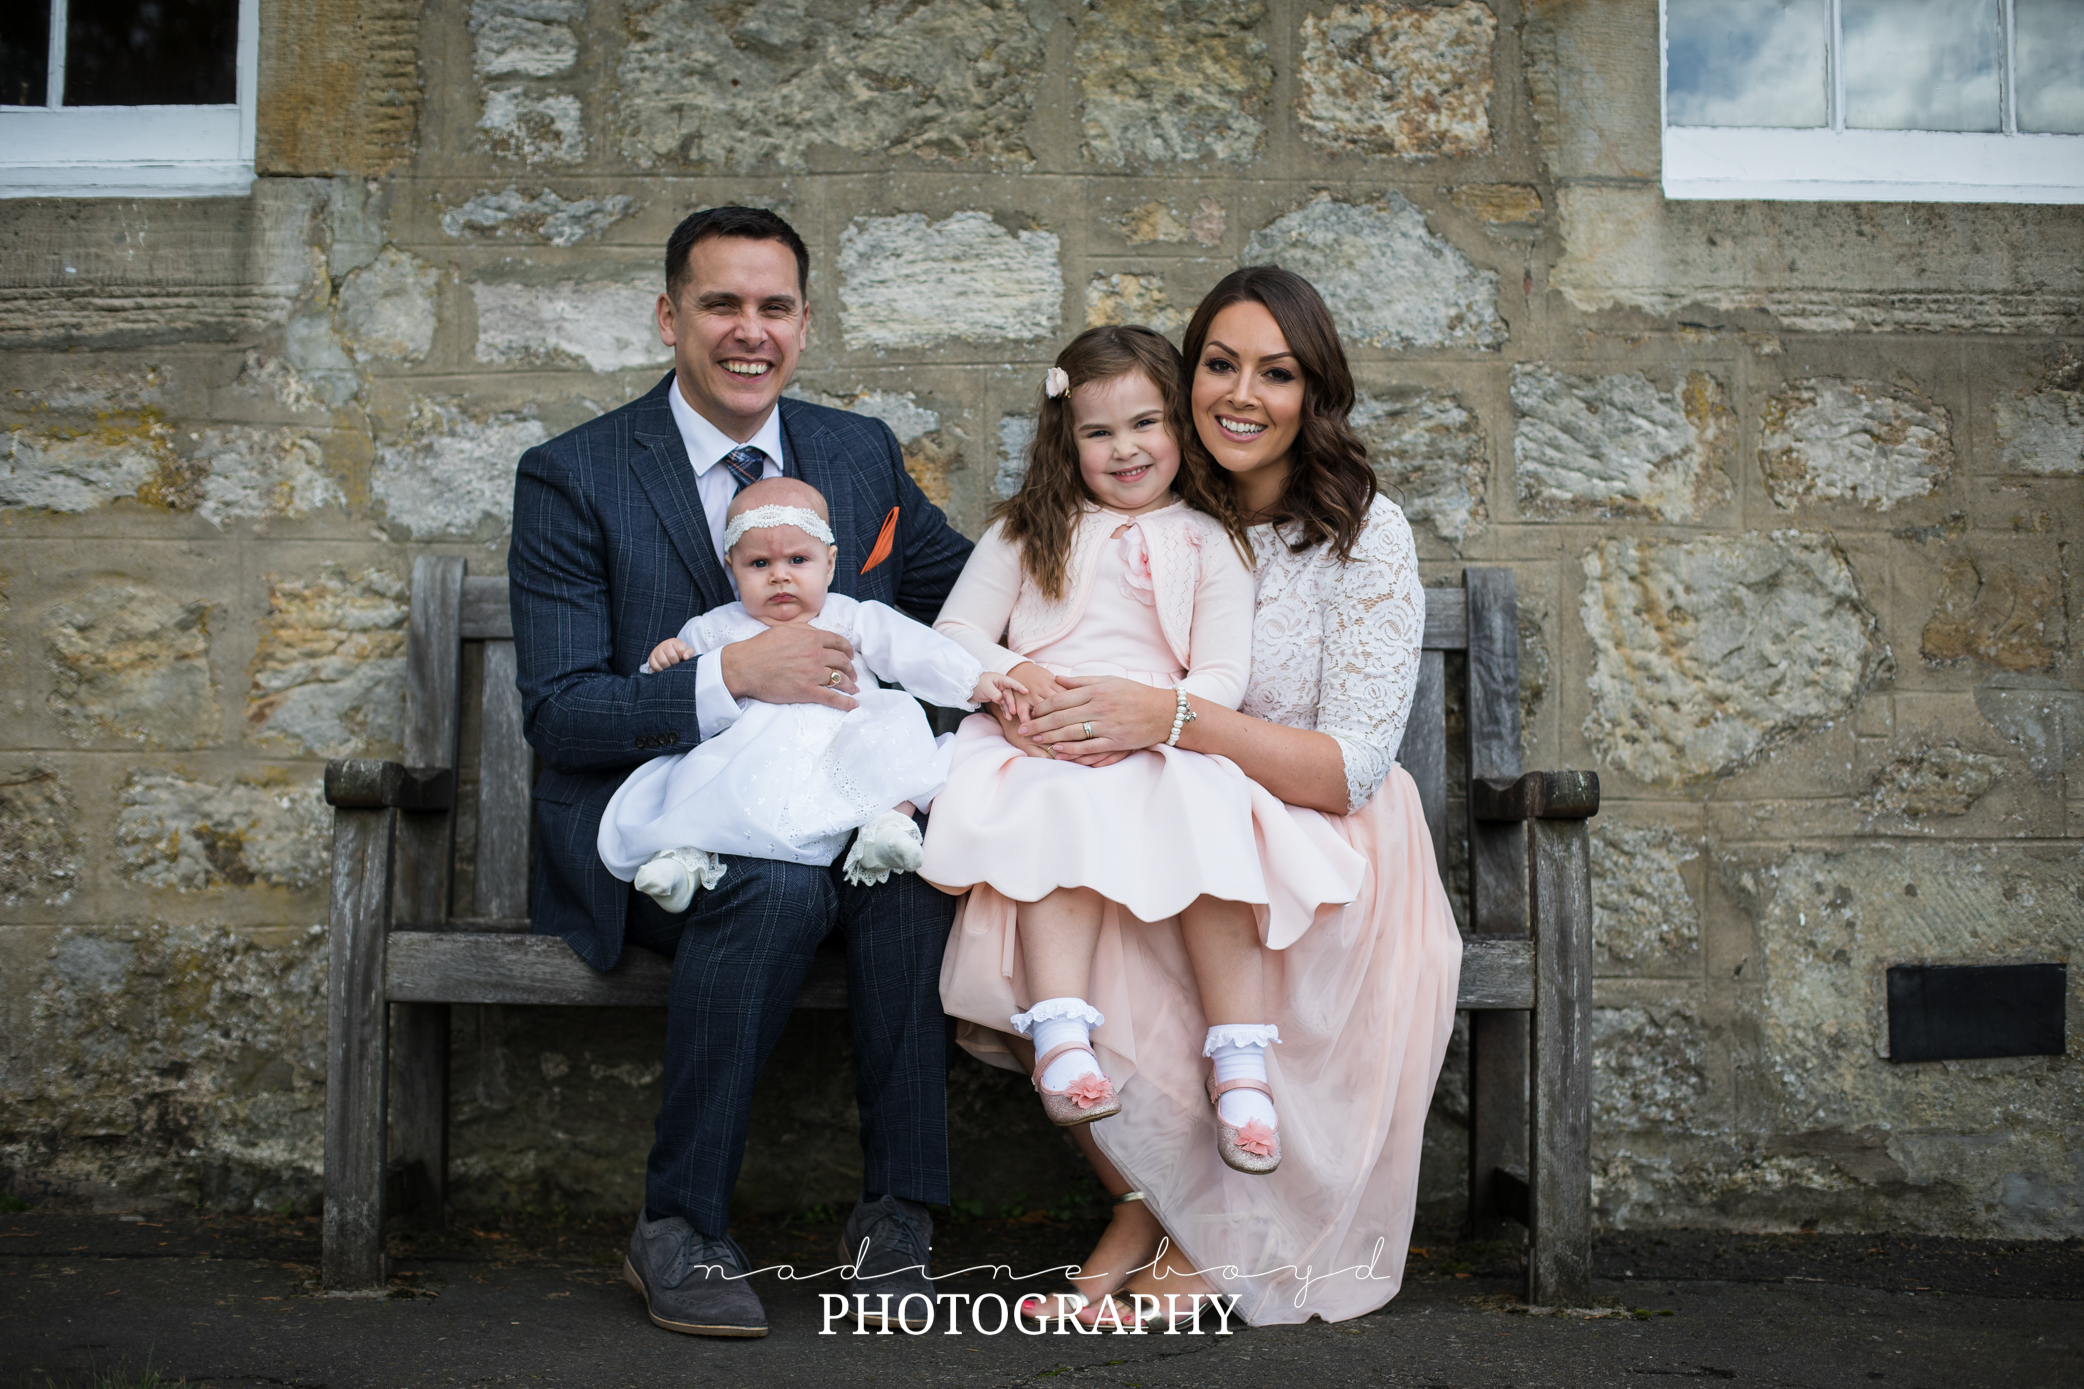 Wedding and christening photography